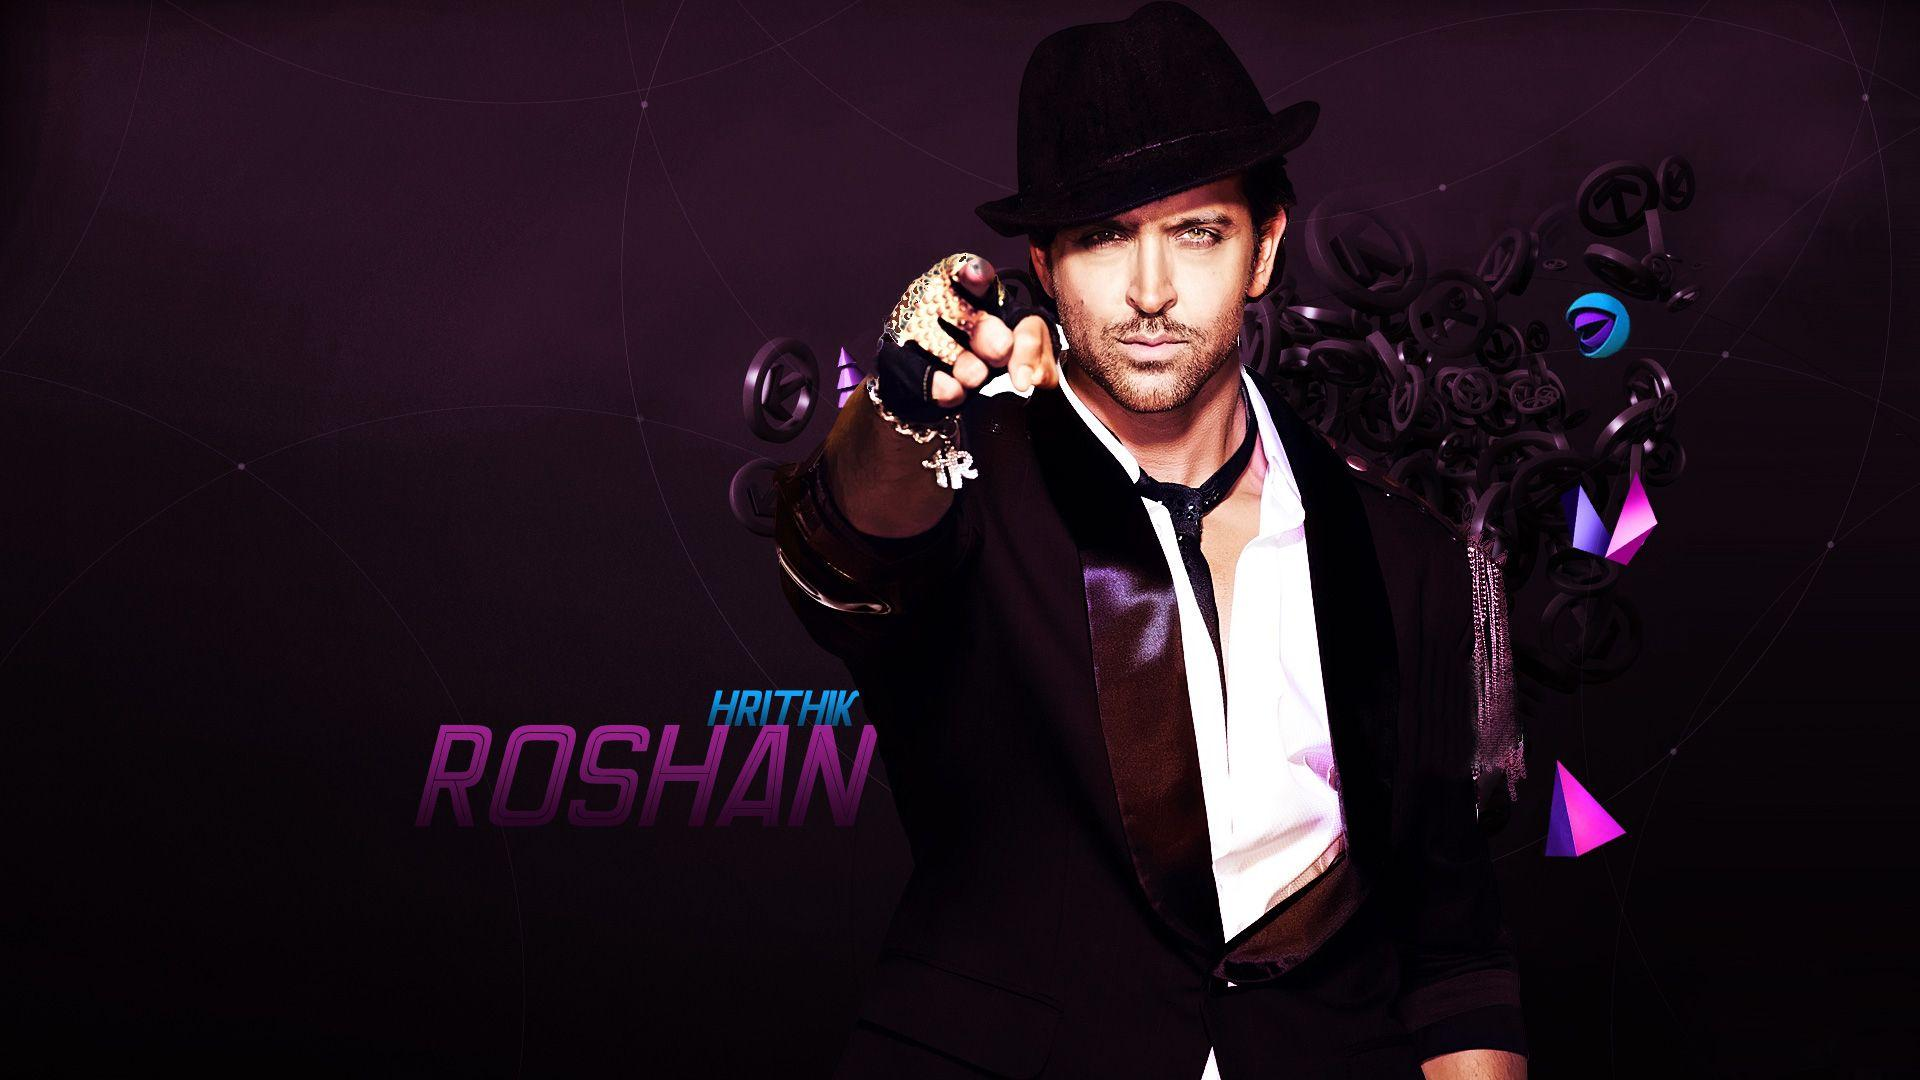 Hrithik Roshan From Krrish 3